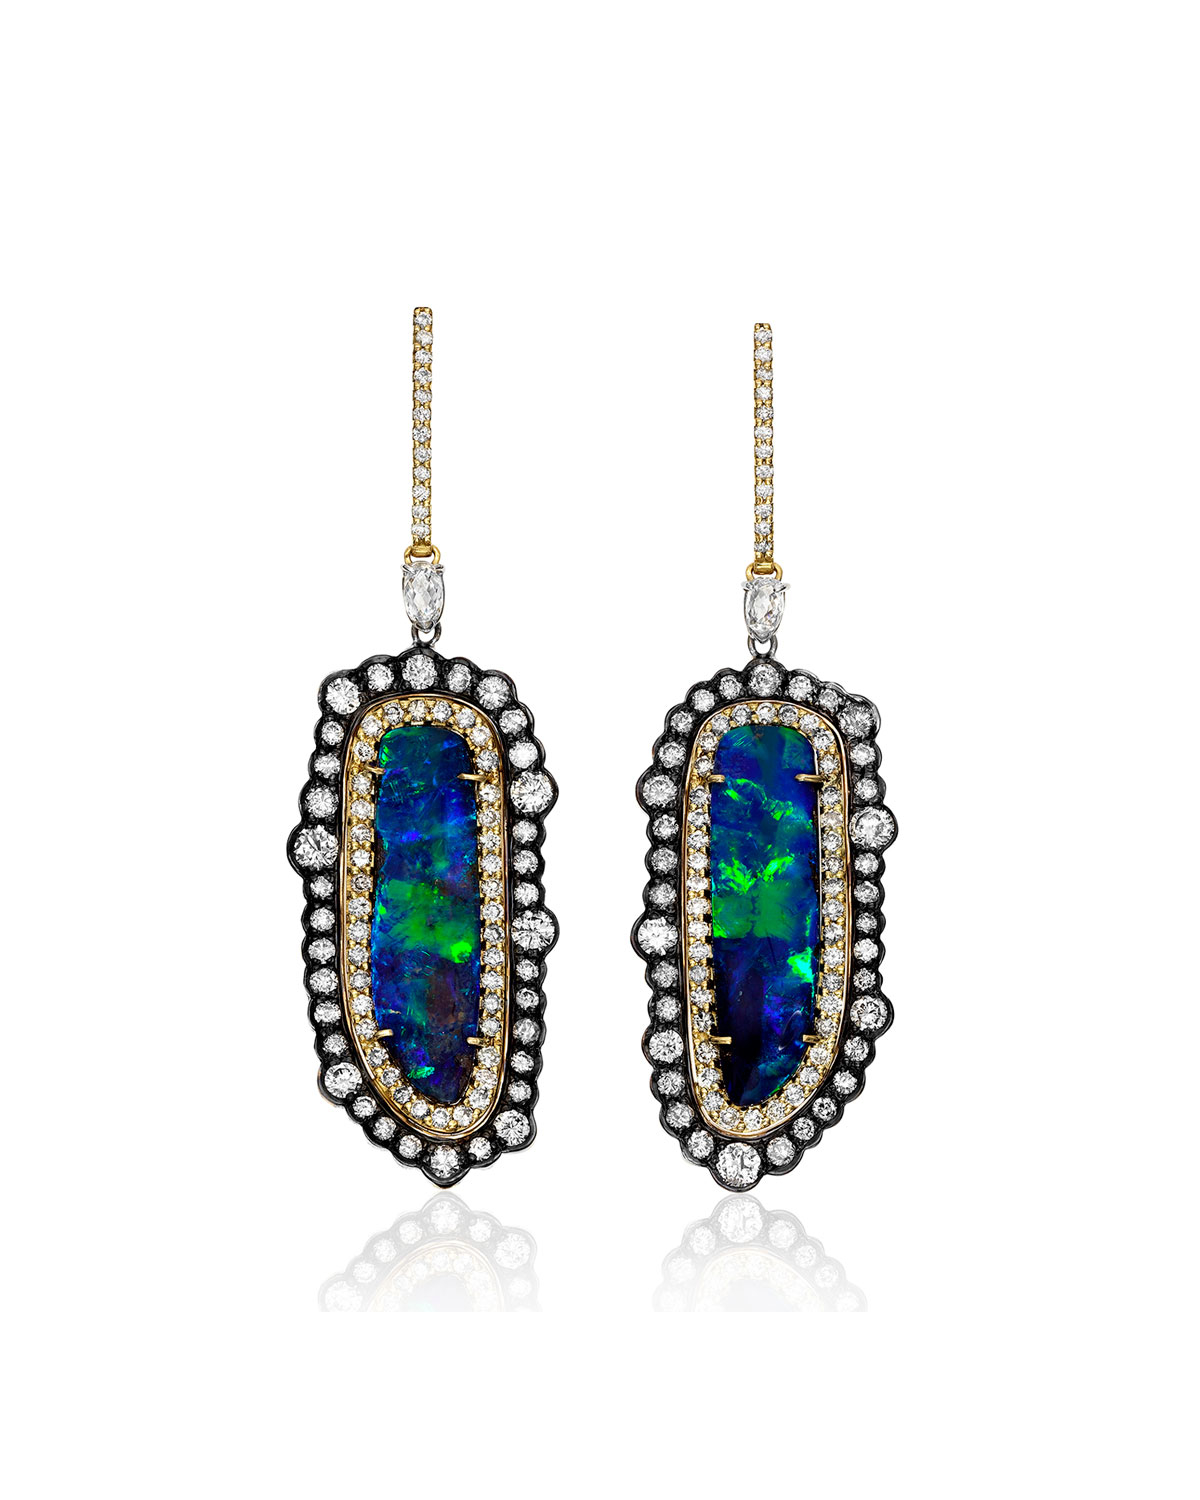 Lyst - Kimberly Mcdonald Boulder Opal & Mixed Diamond Earrings in Blue